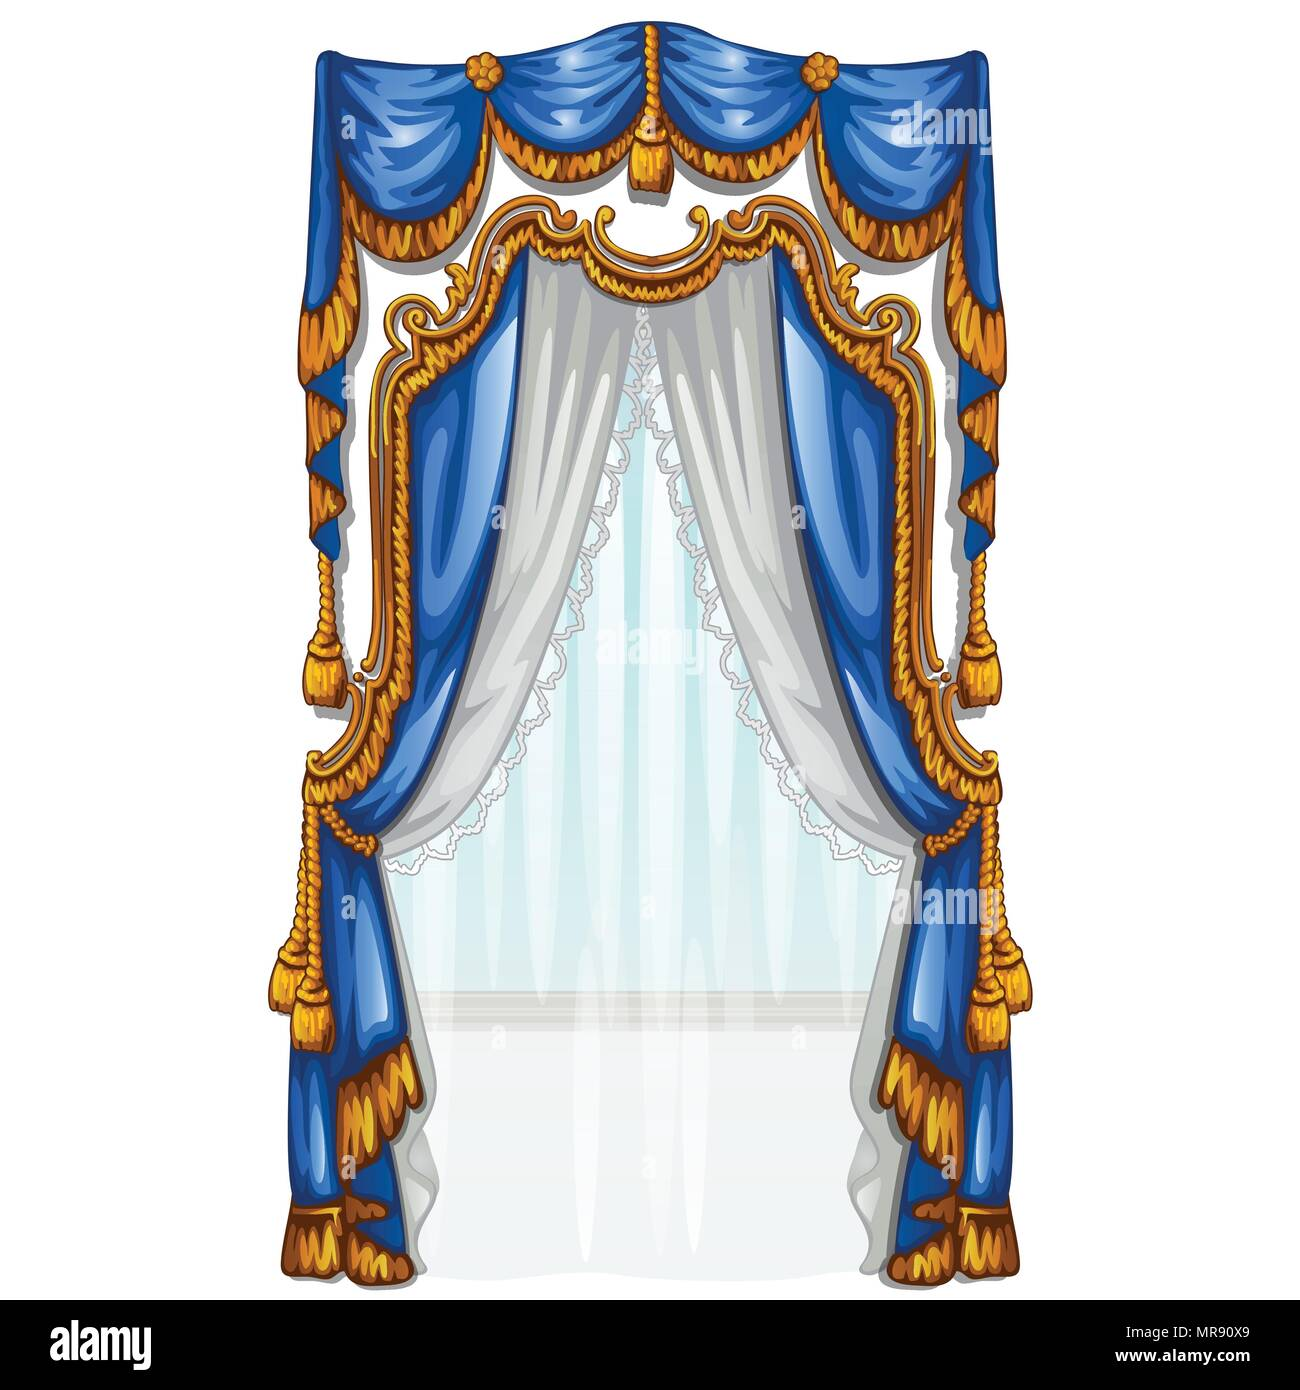 The ornate curtain in the interior. Vector illustration. - Stock Vector